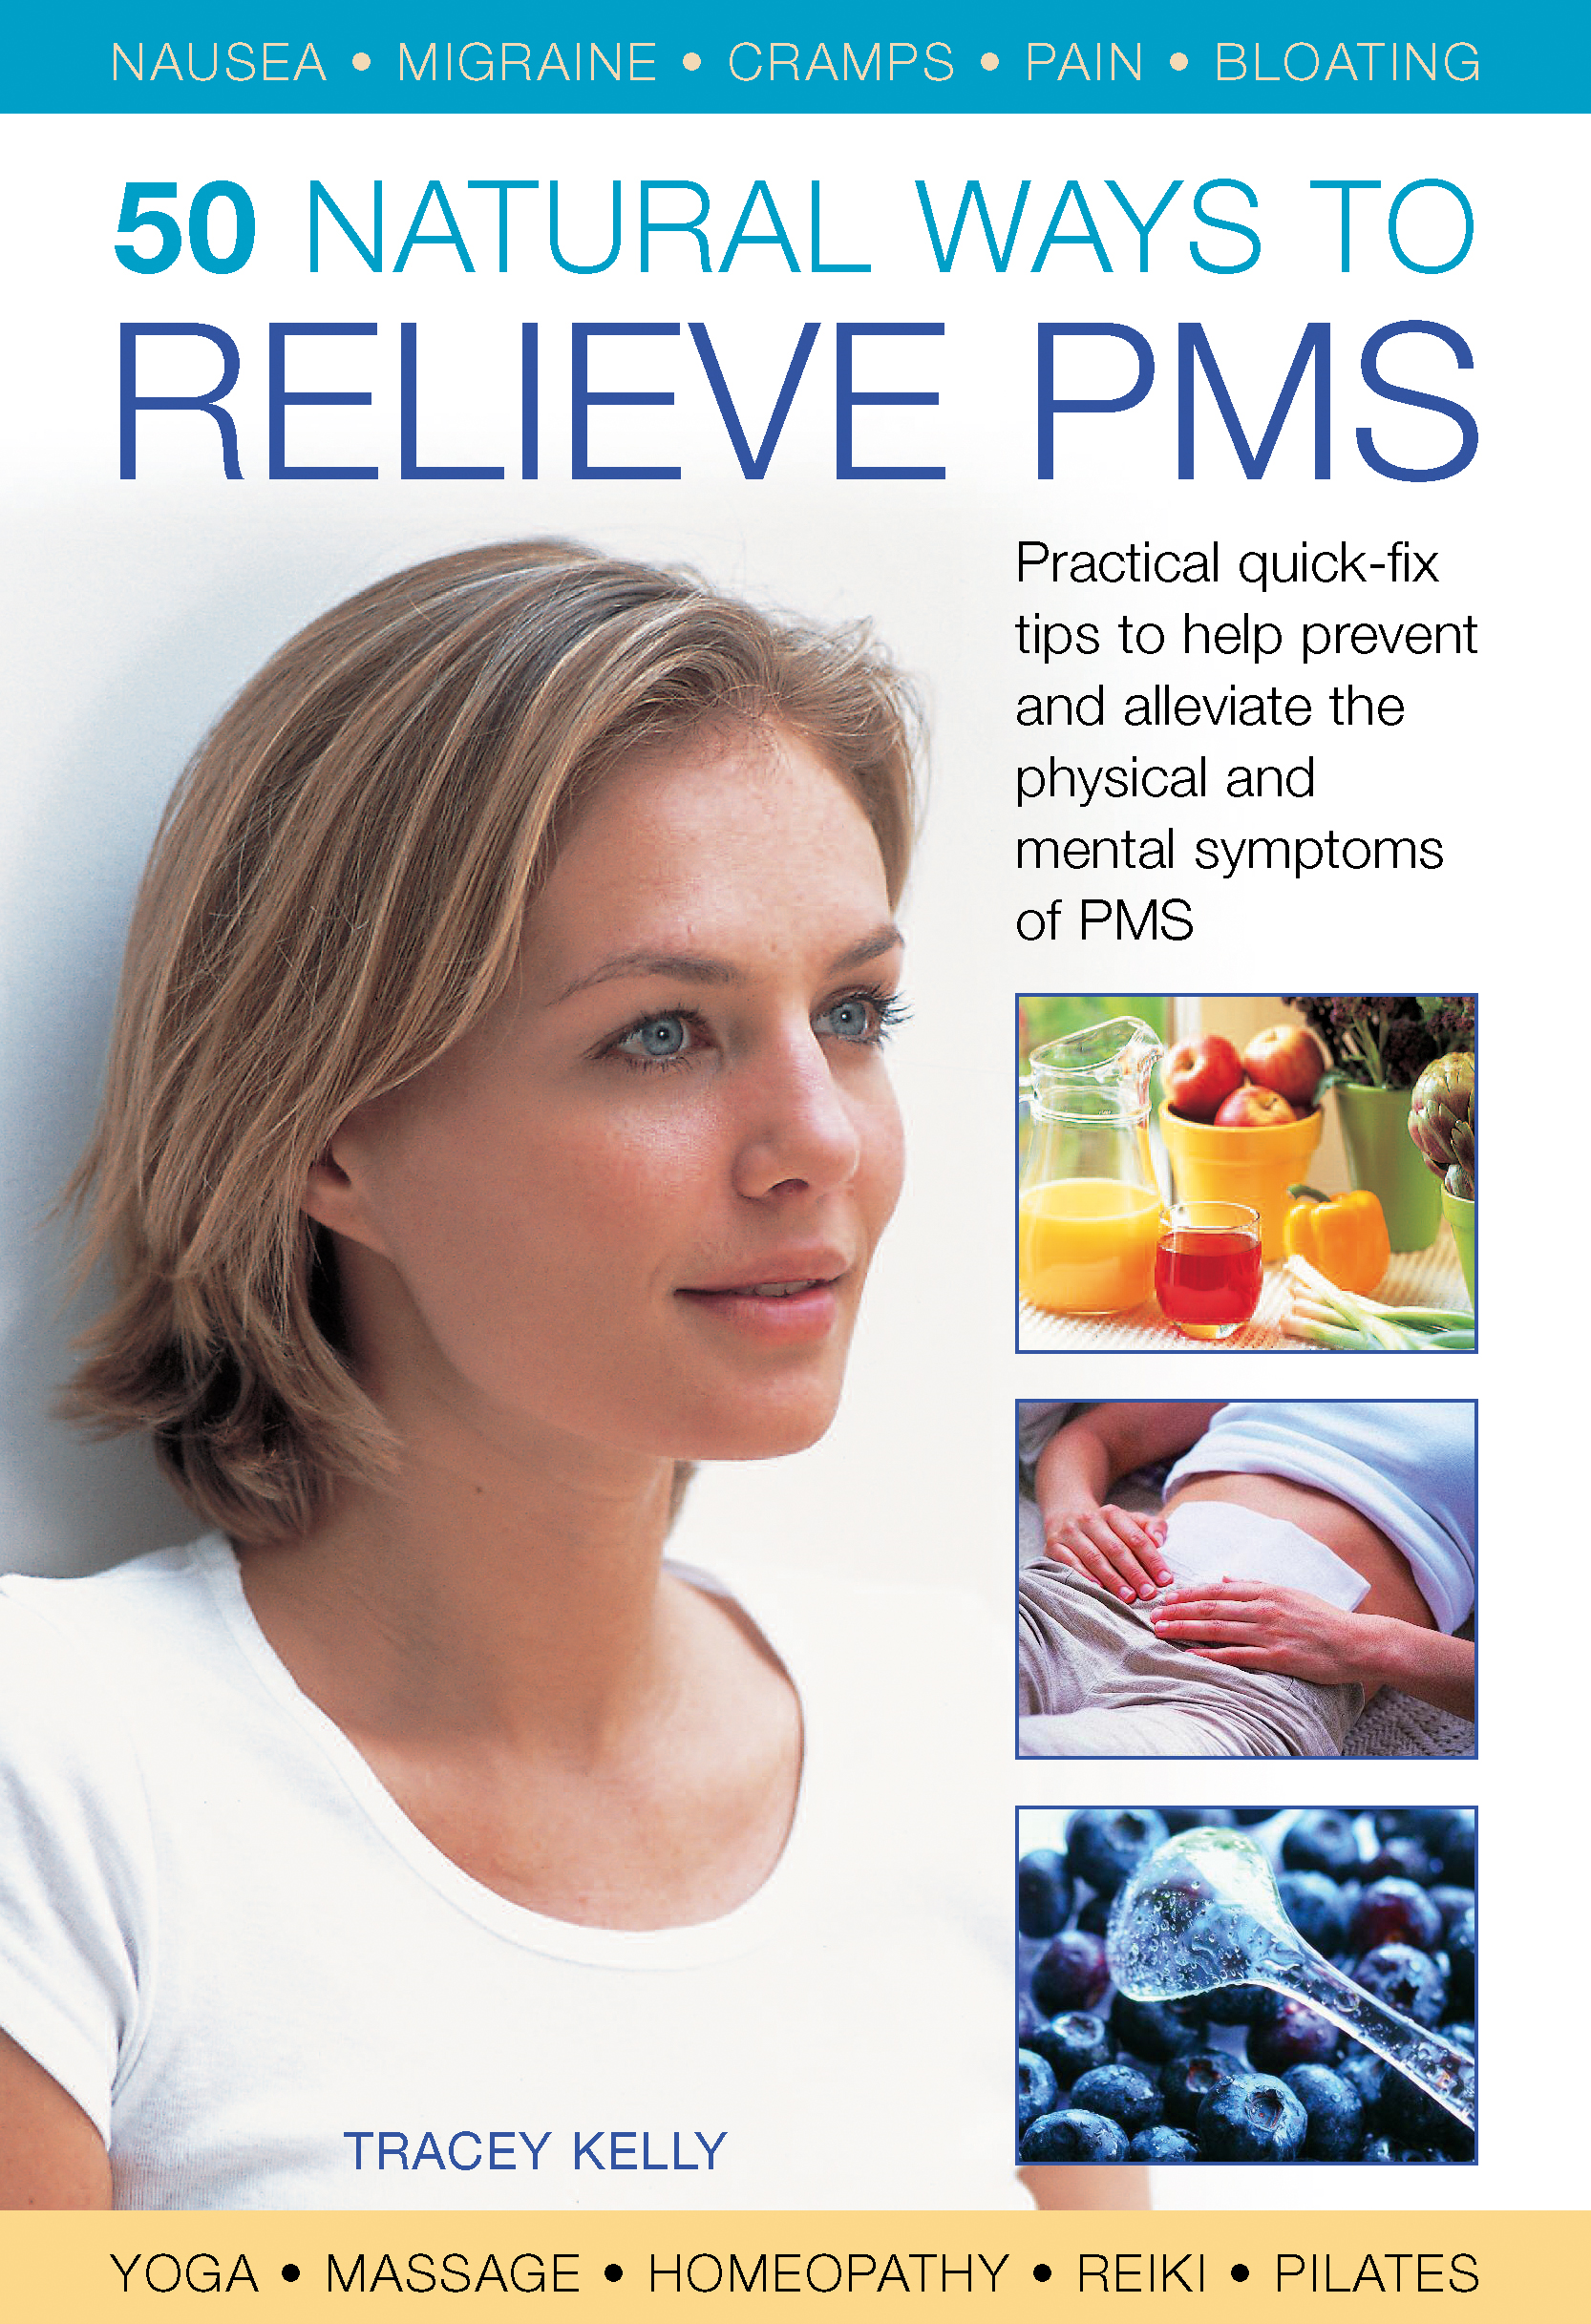 50 Natural Ways to Relieve PMS Practical quick-fix tips to help prevent and alleviate the phusical and mental sumptoms of PMS